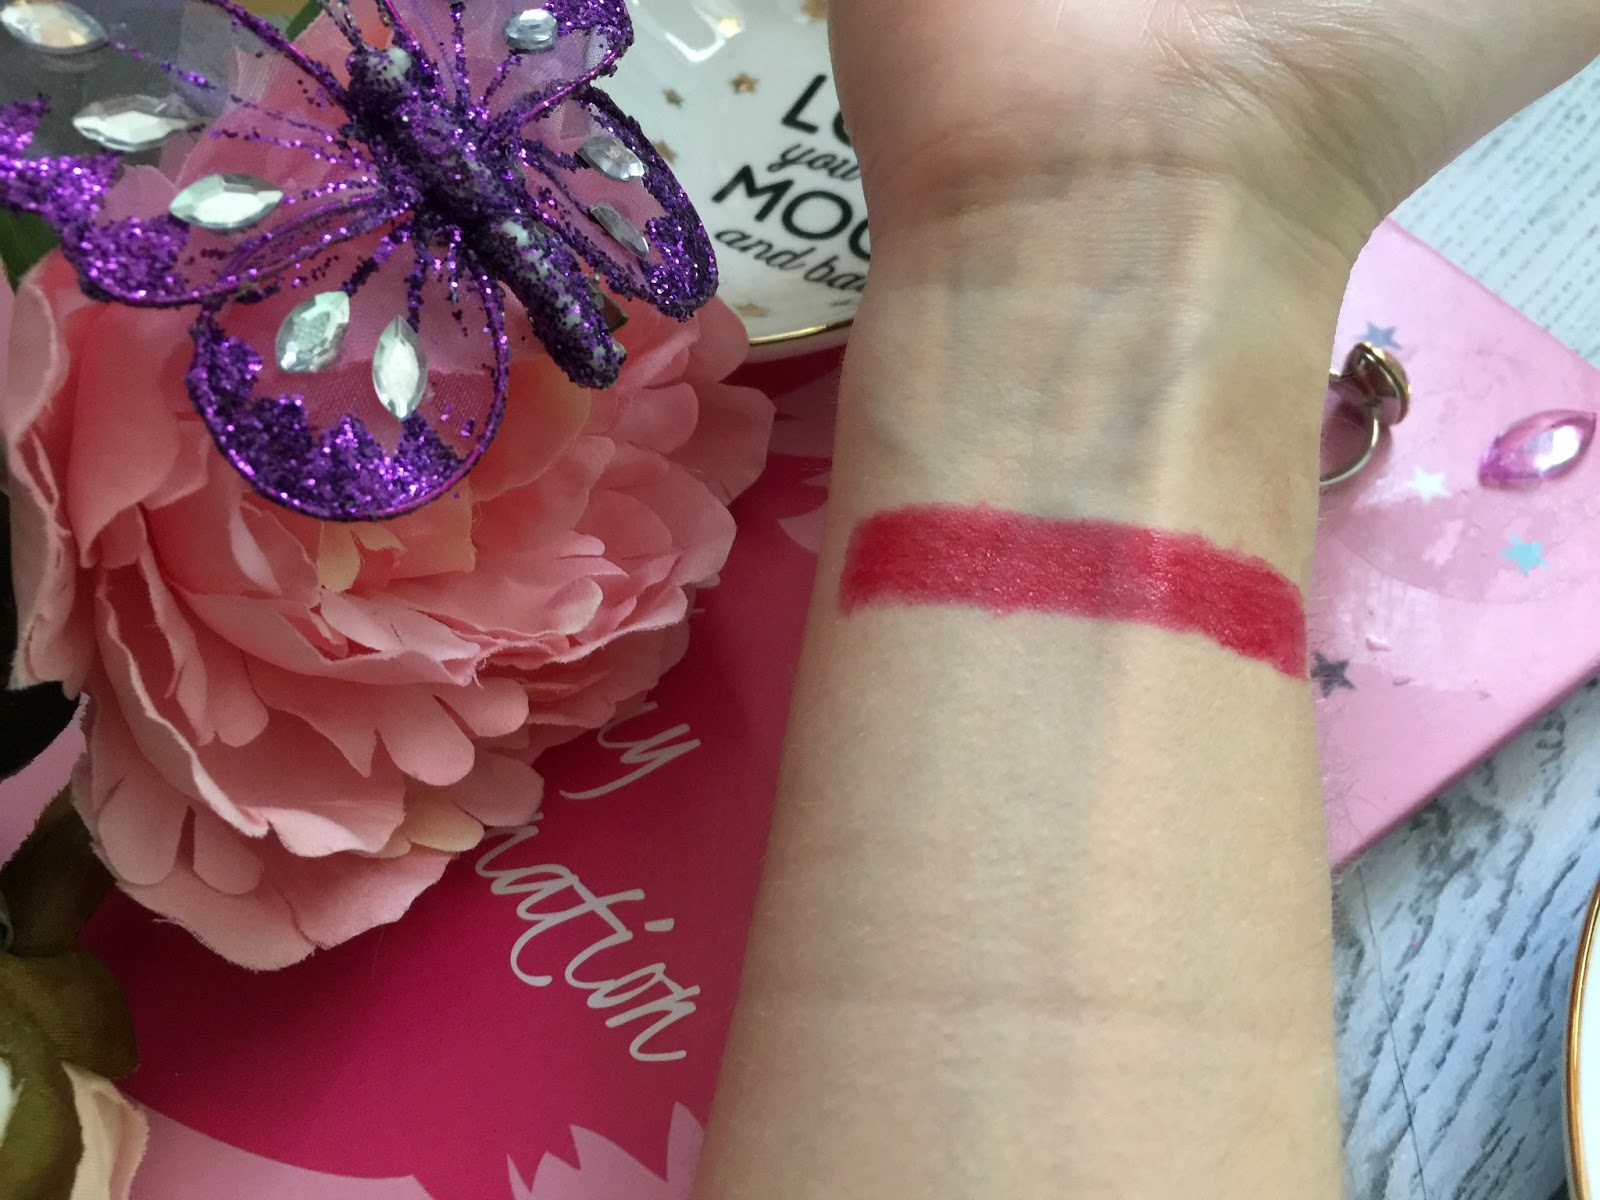 bourjois colorboost lipstick in red island swatch